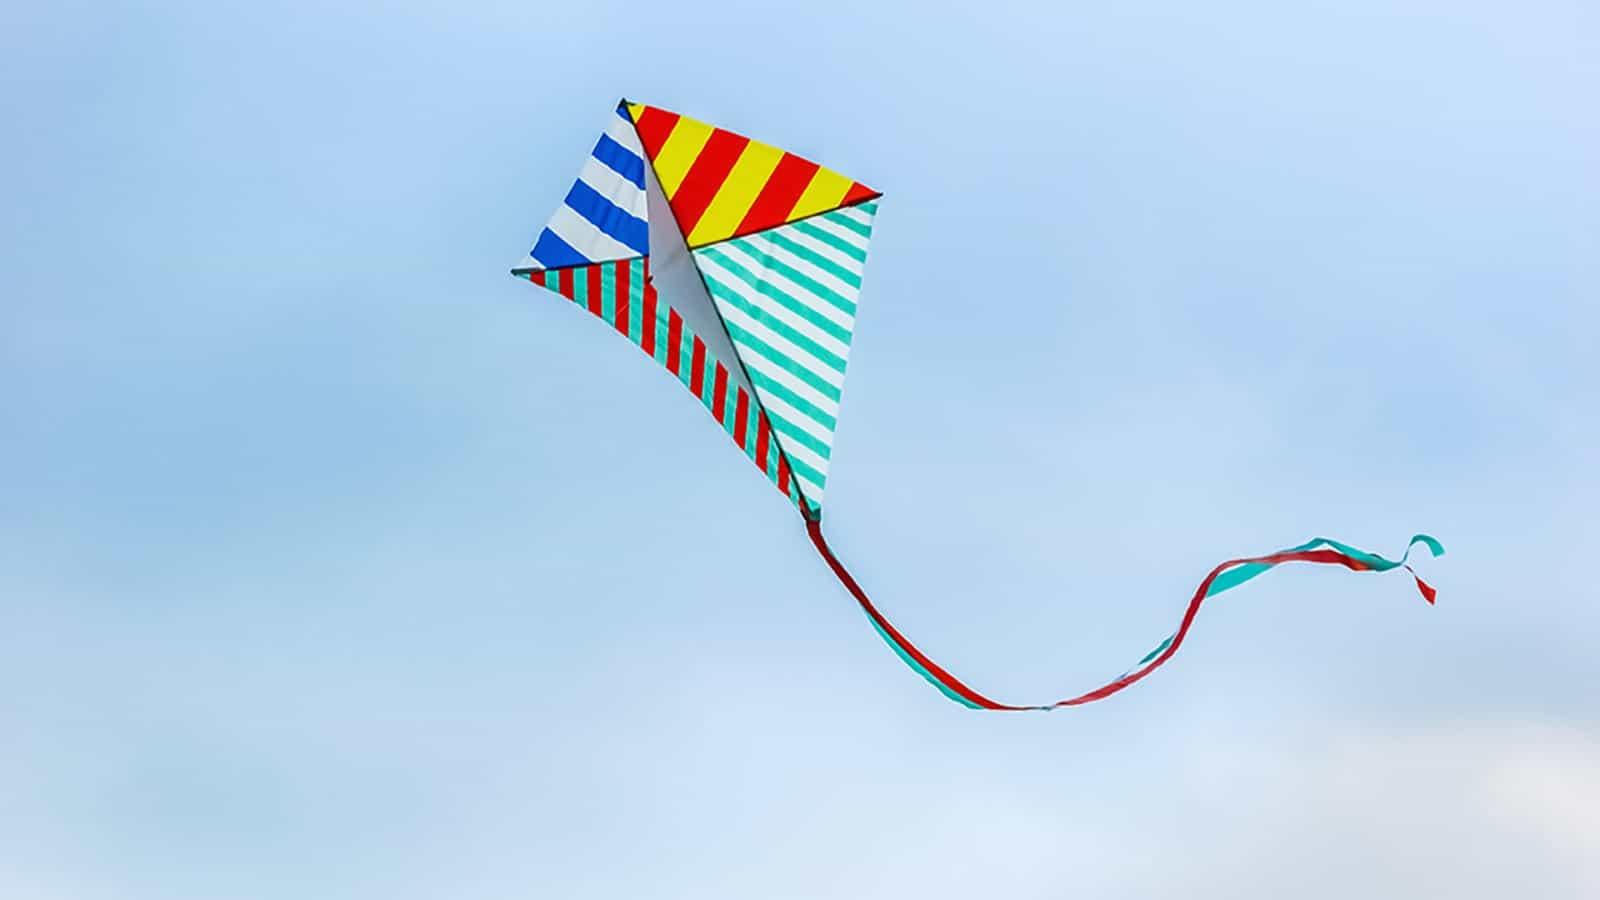 Fly a Kite with Your Kids (and Teach Them a Bit of Engineering)